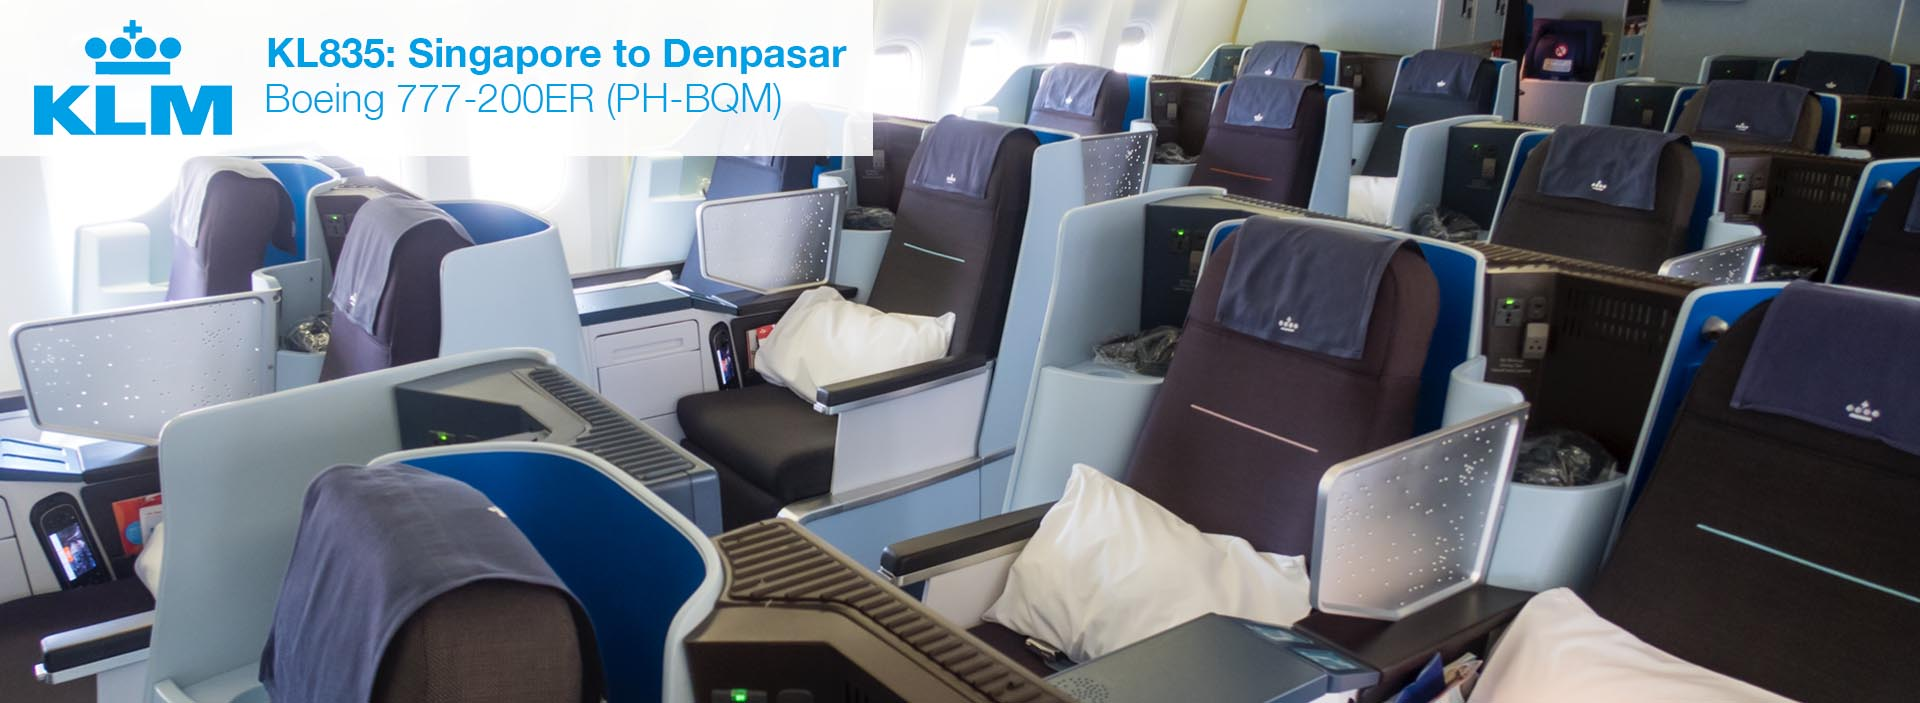 Review: KLM 777-200ER Business Class from Singapore to Denpasar